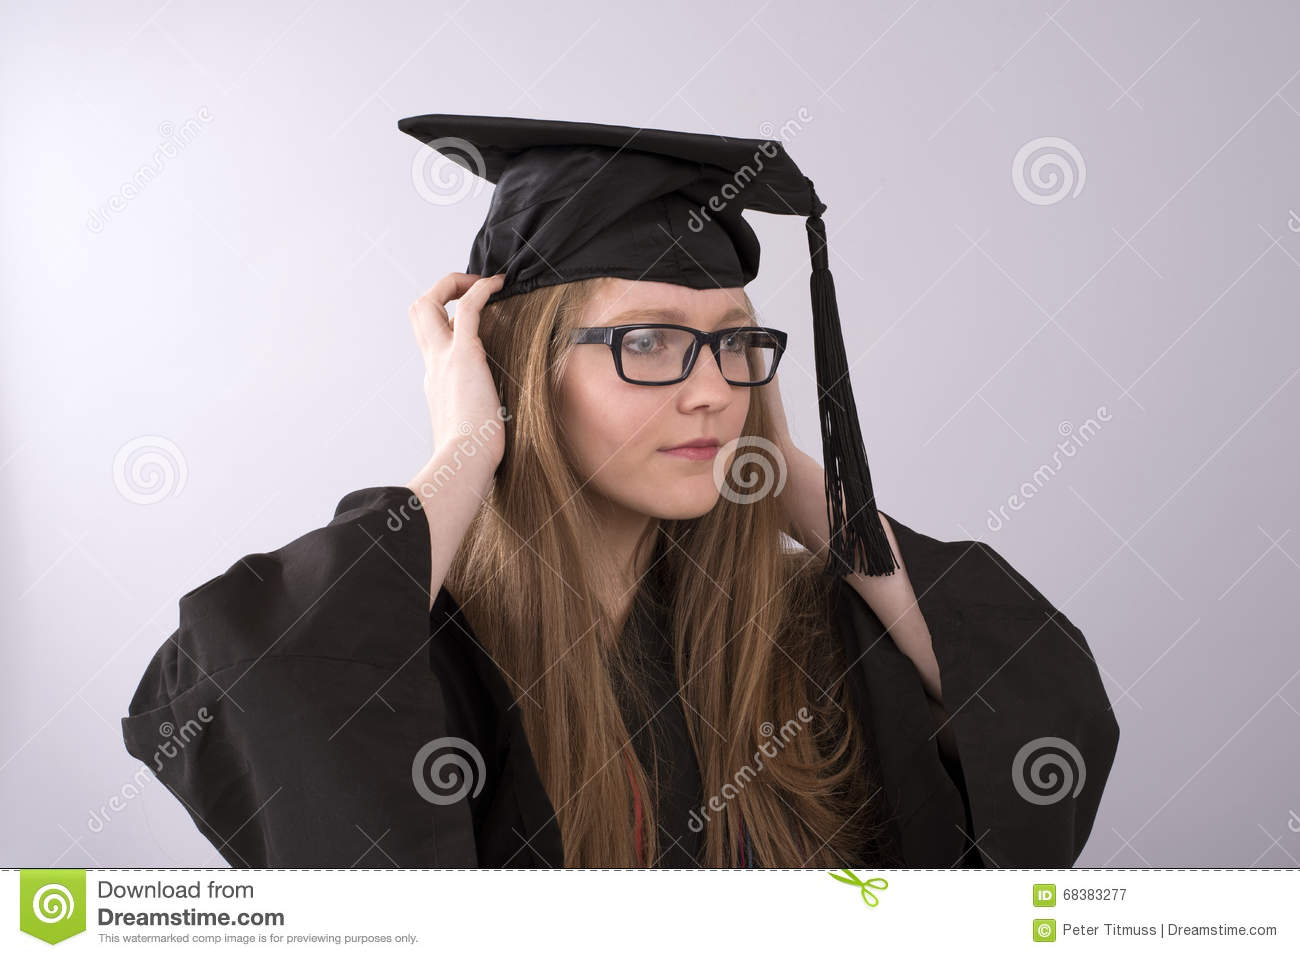 University Graduate Wearing Cap And Gown Stock Image - Image of ...